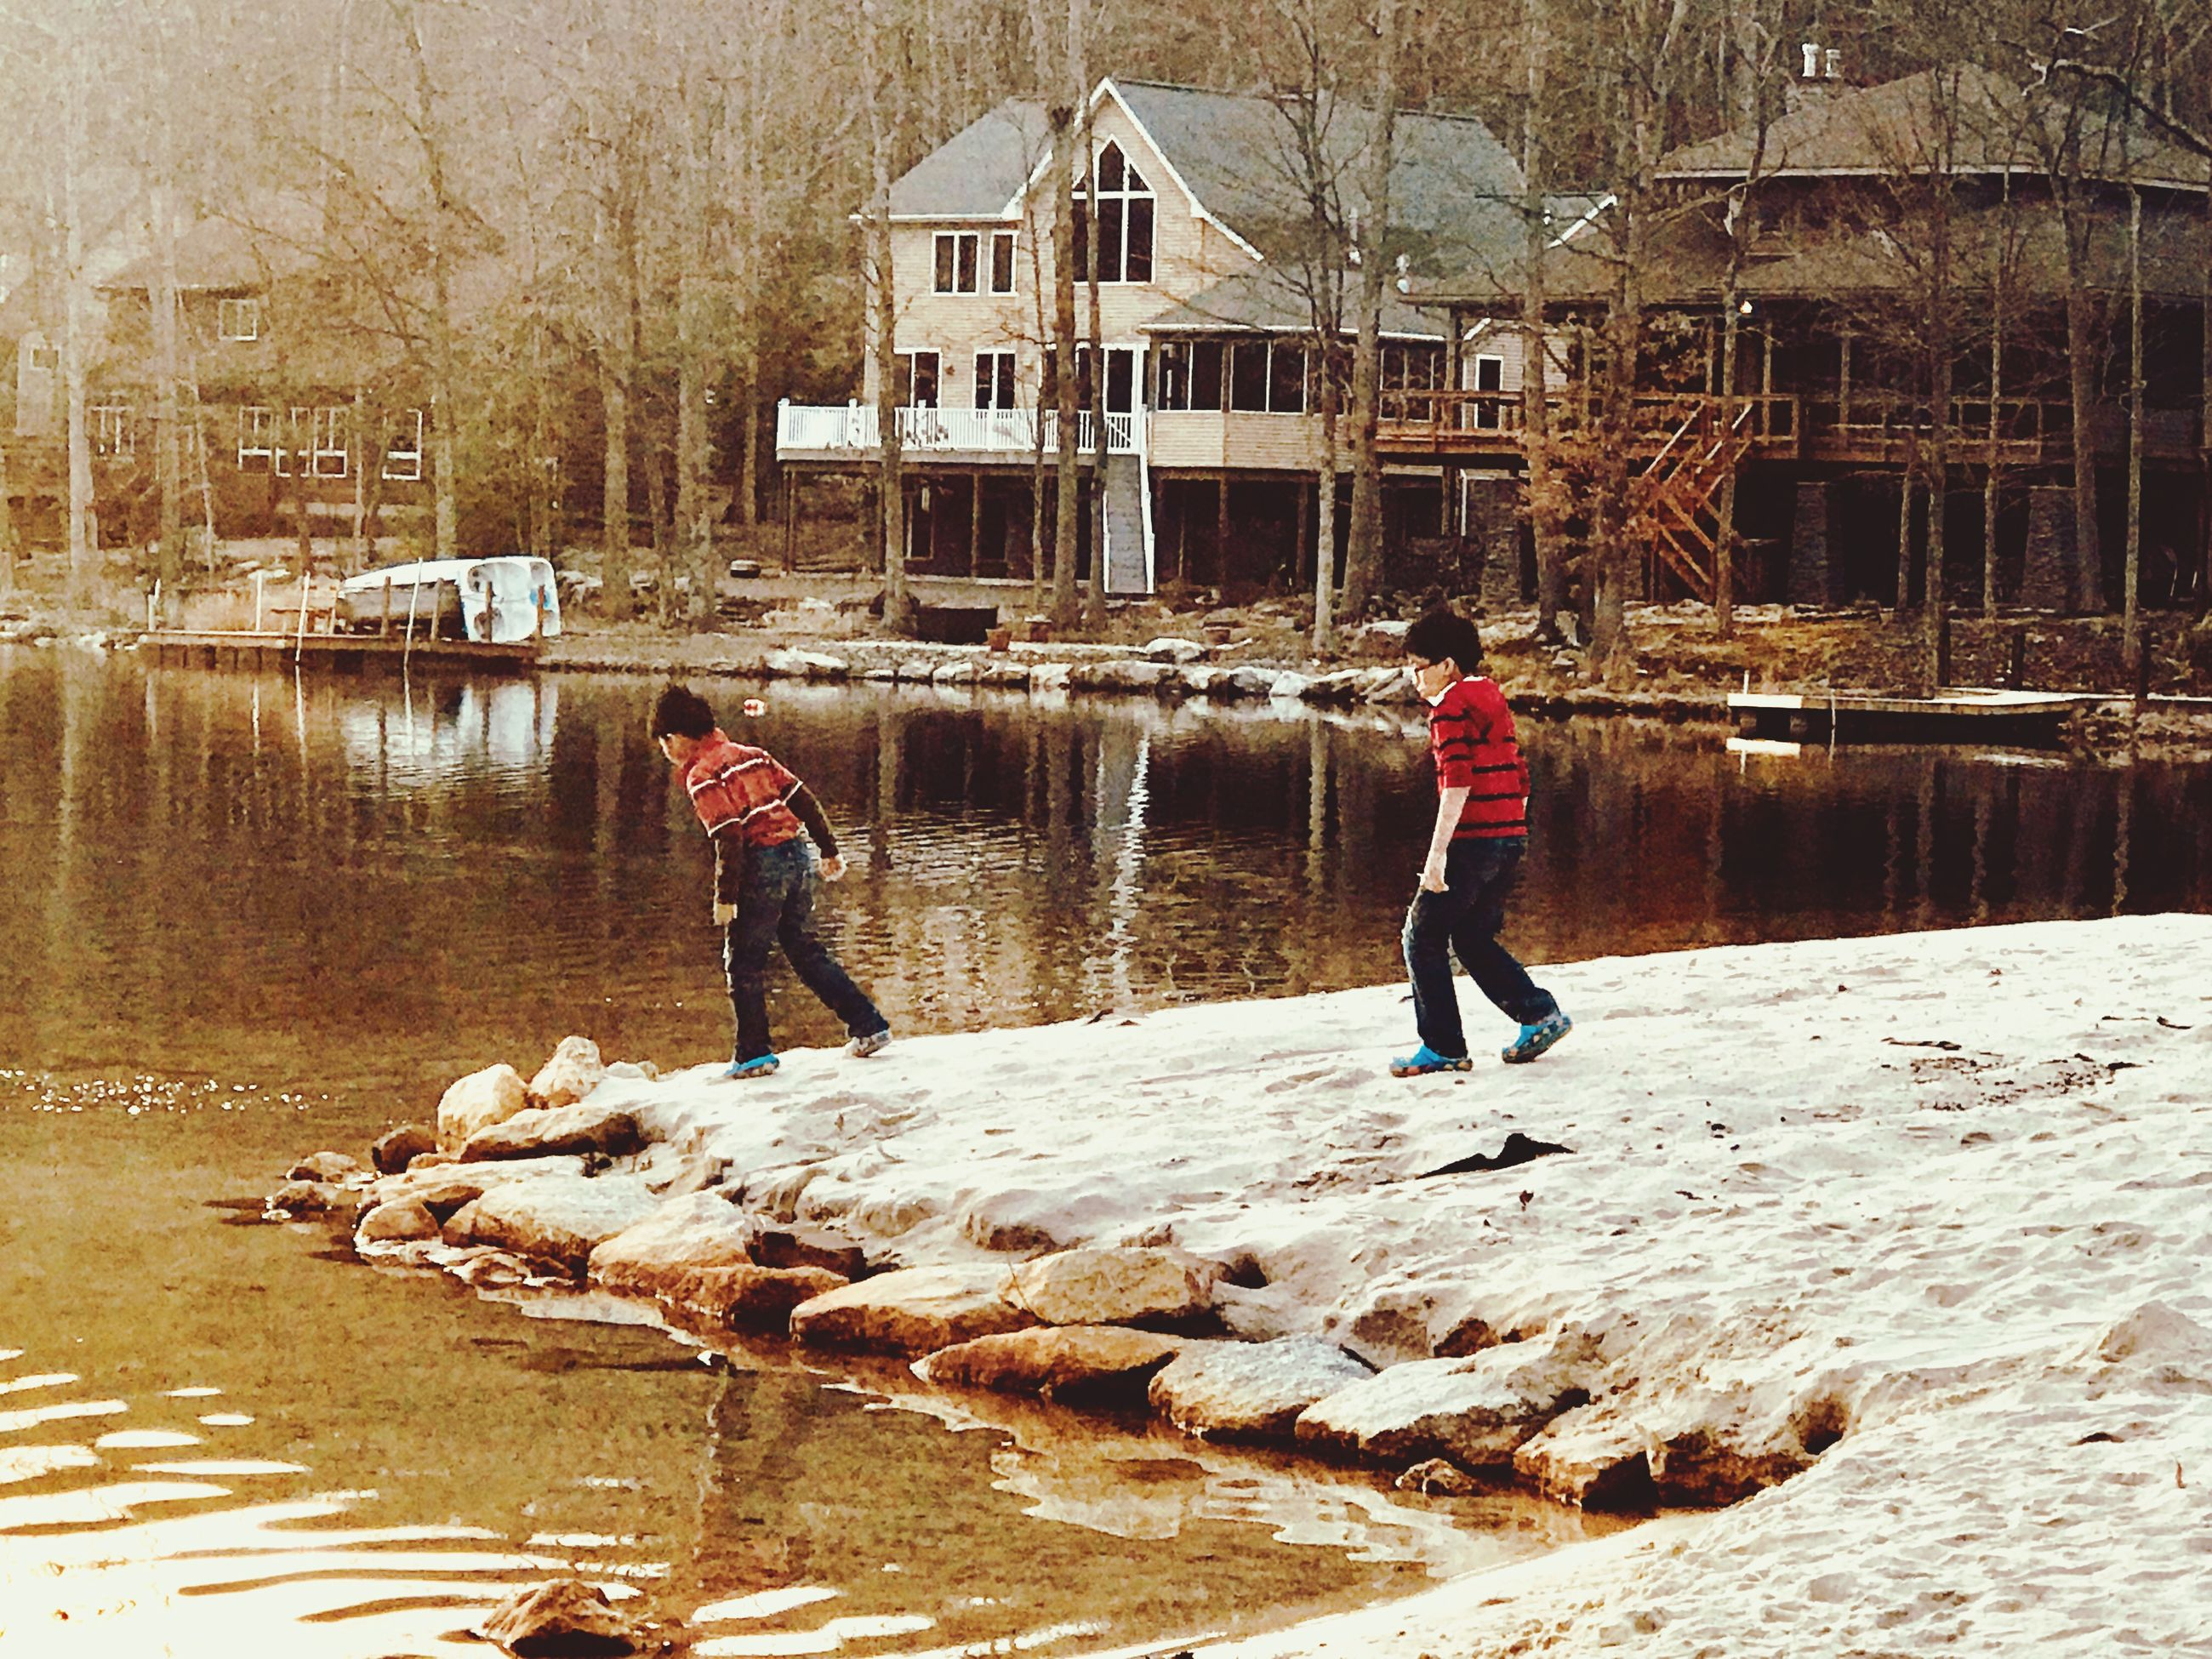 water, real people, built structure, nature, architecture, full length, lake, people, day, lifestyles, men, building exterior, reflection, child, childhood, winter, leisure activity, outdoors, warm clothing